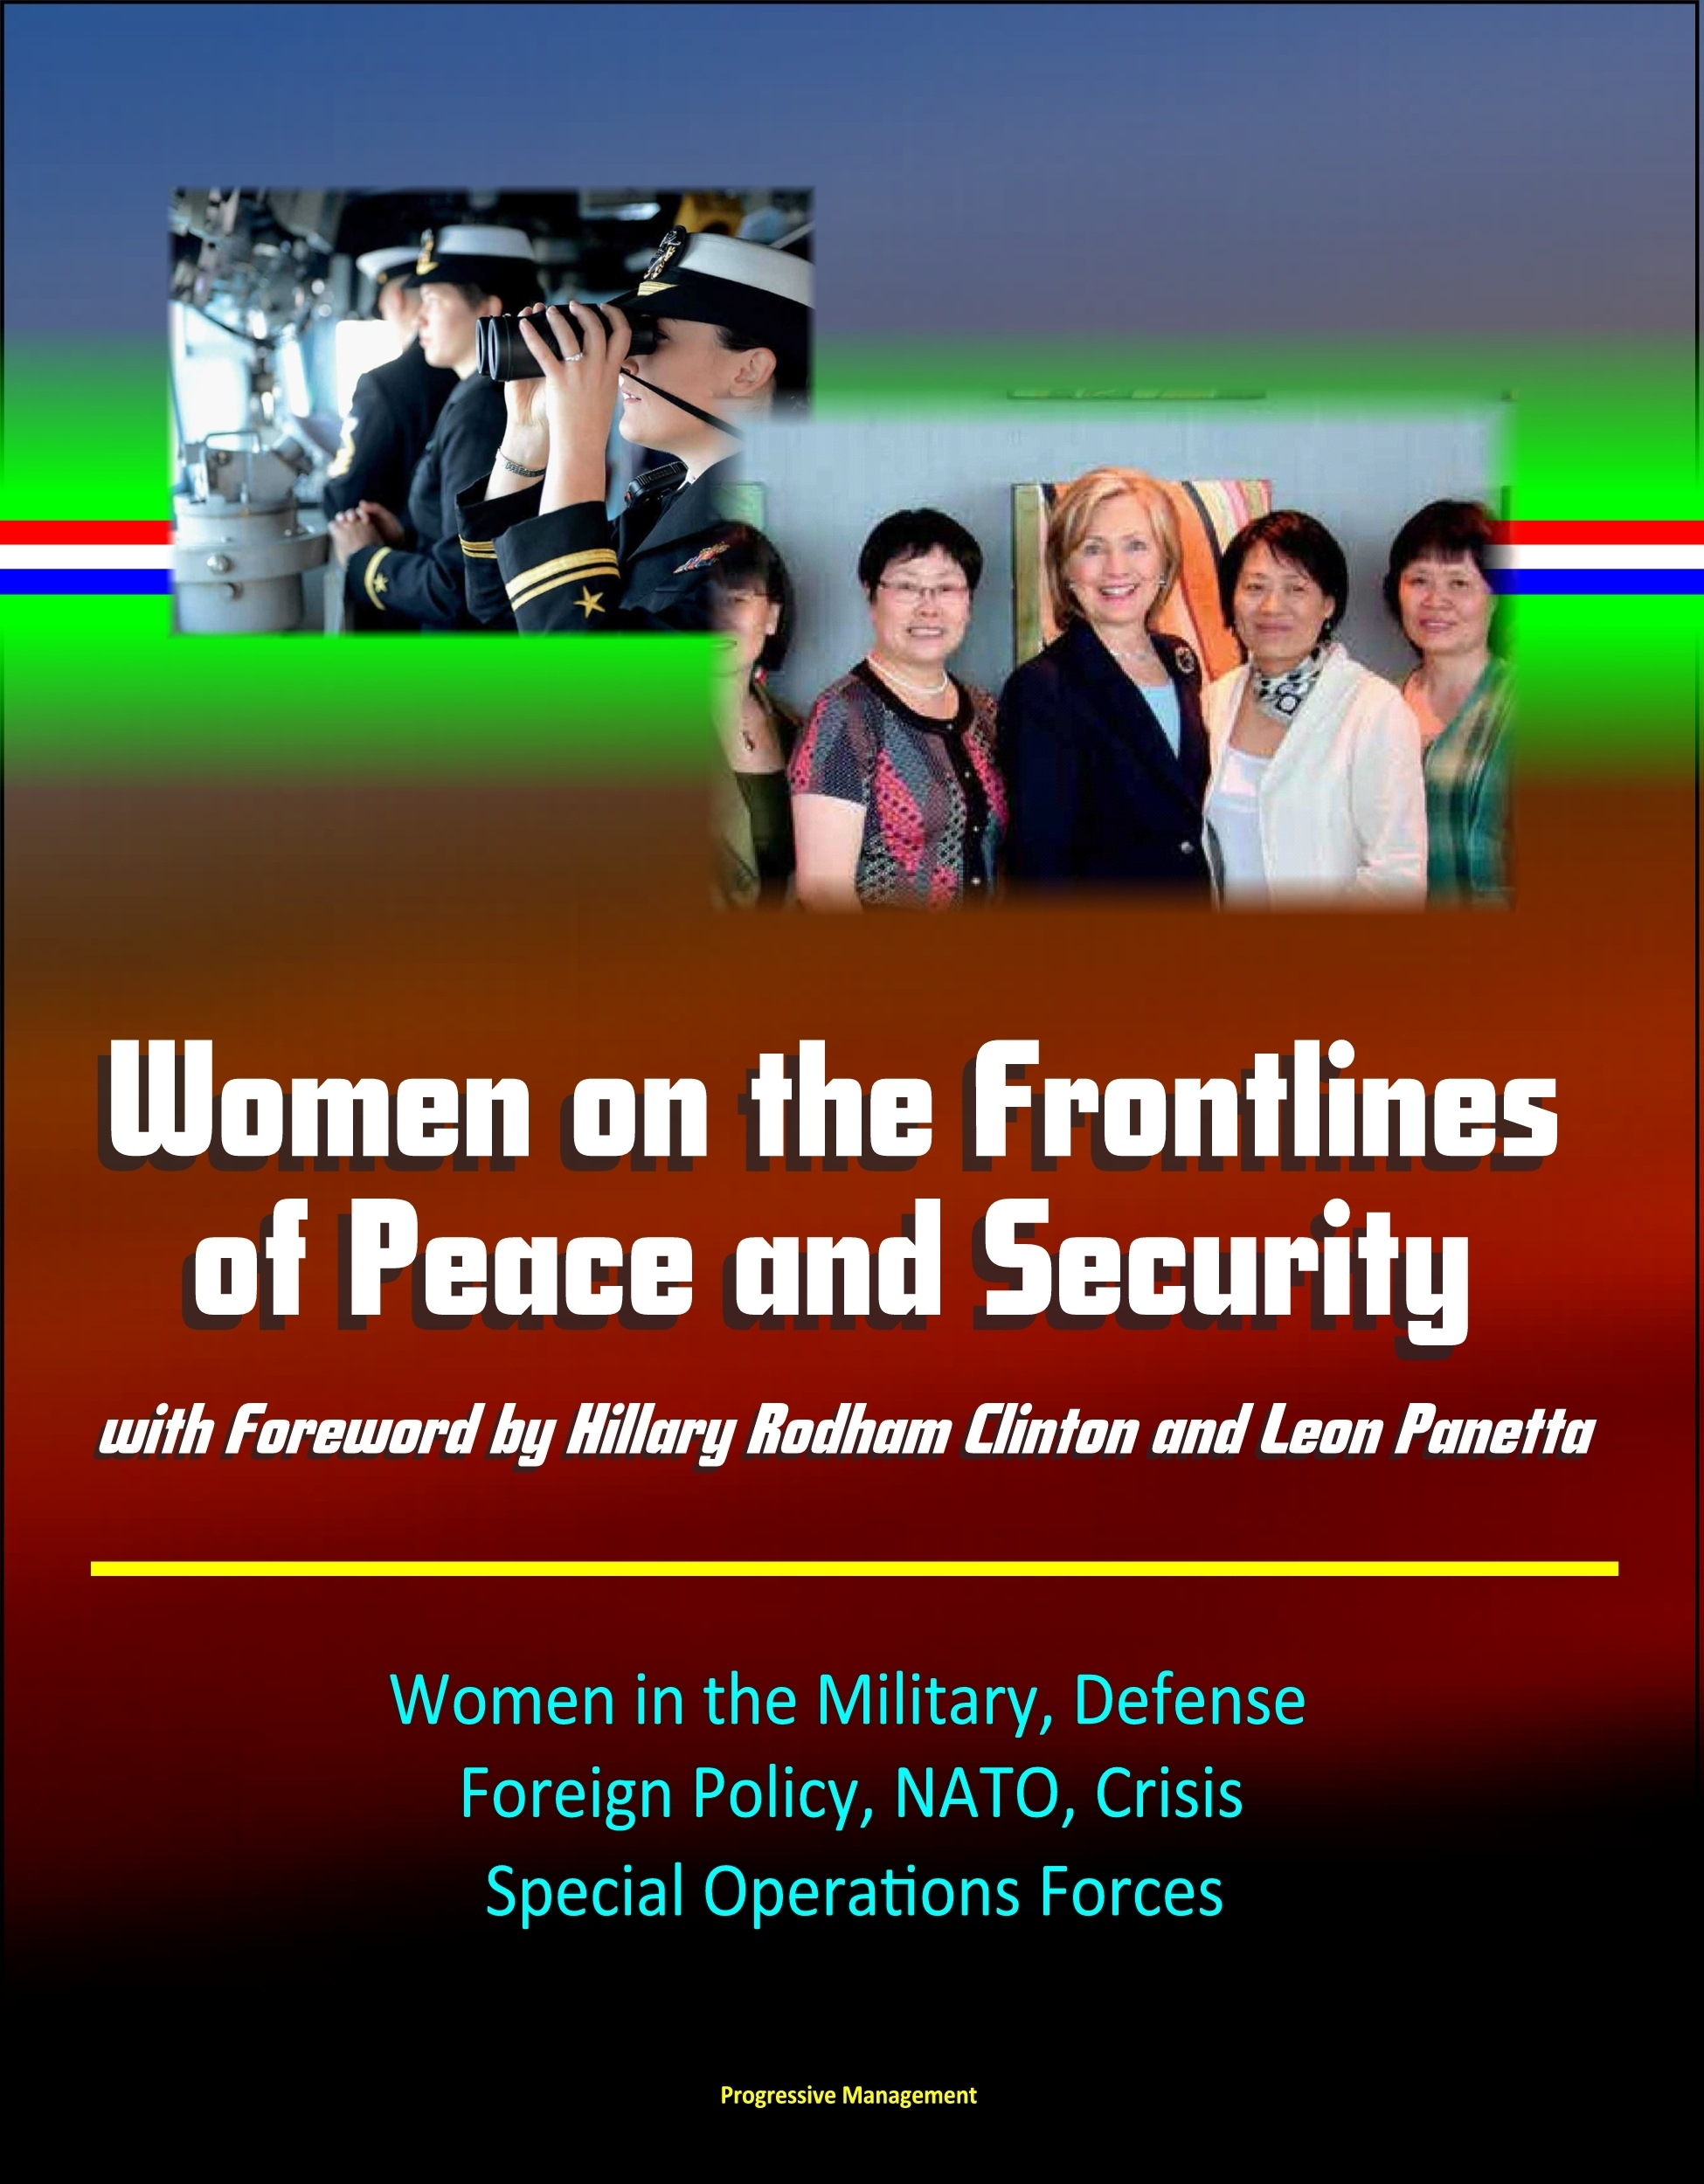 Women on the Frontlines of Peace and Security with Foreword  by  Hillary Rodham Clinton and Leon Panetta: Women in the Military, Defense, Foreign Policy, NATO, Crisis, Special Operations Forces by Progressive Management